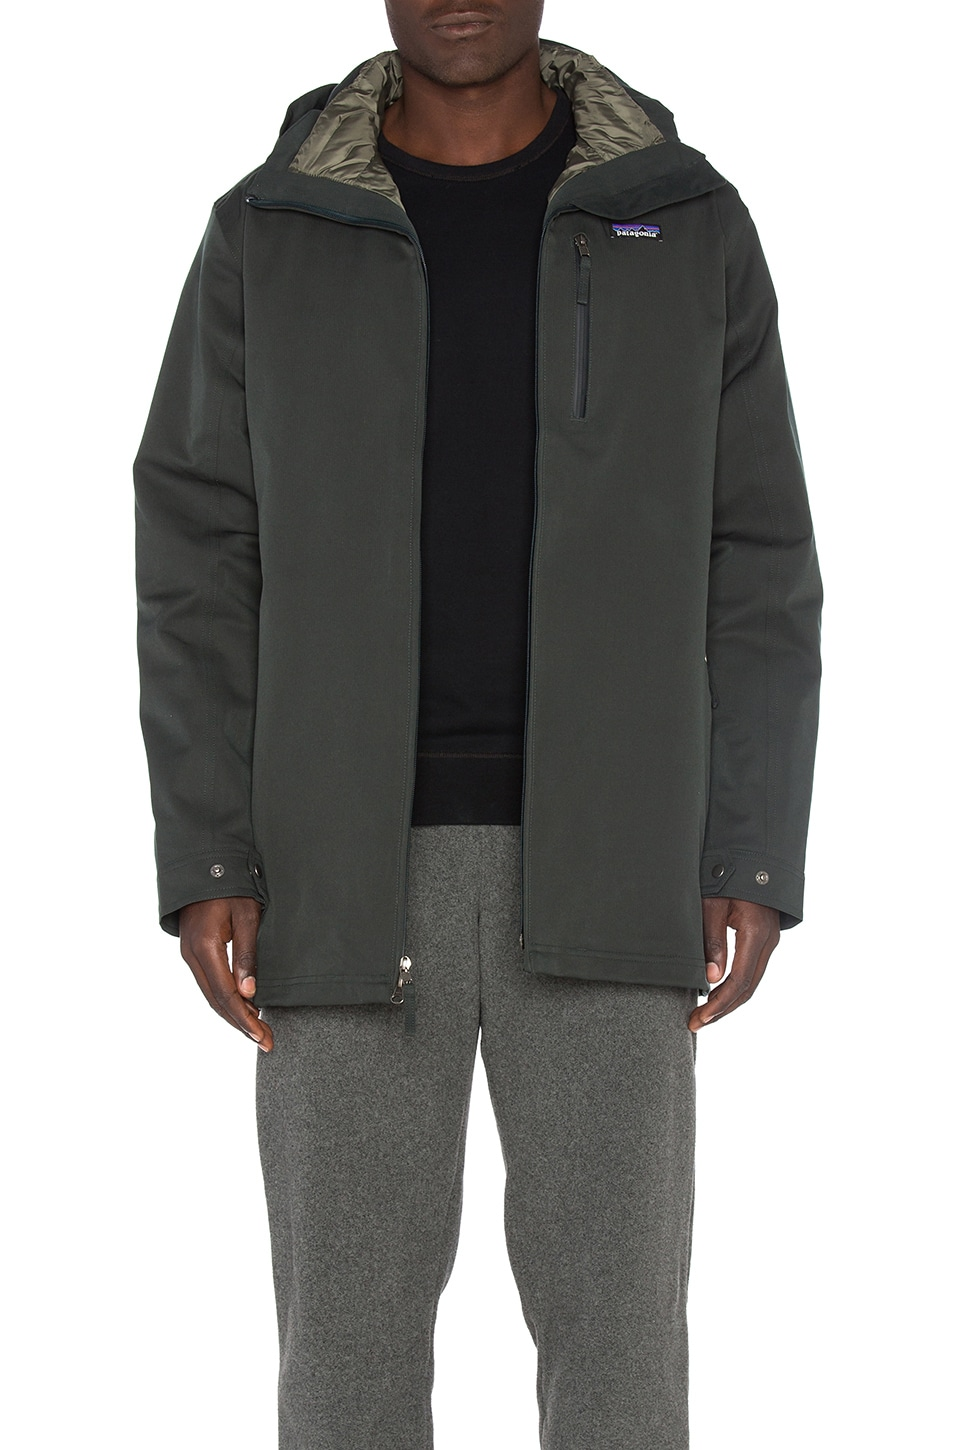 Tres 3-In-1 Parka by Patagonia